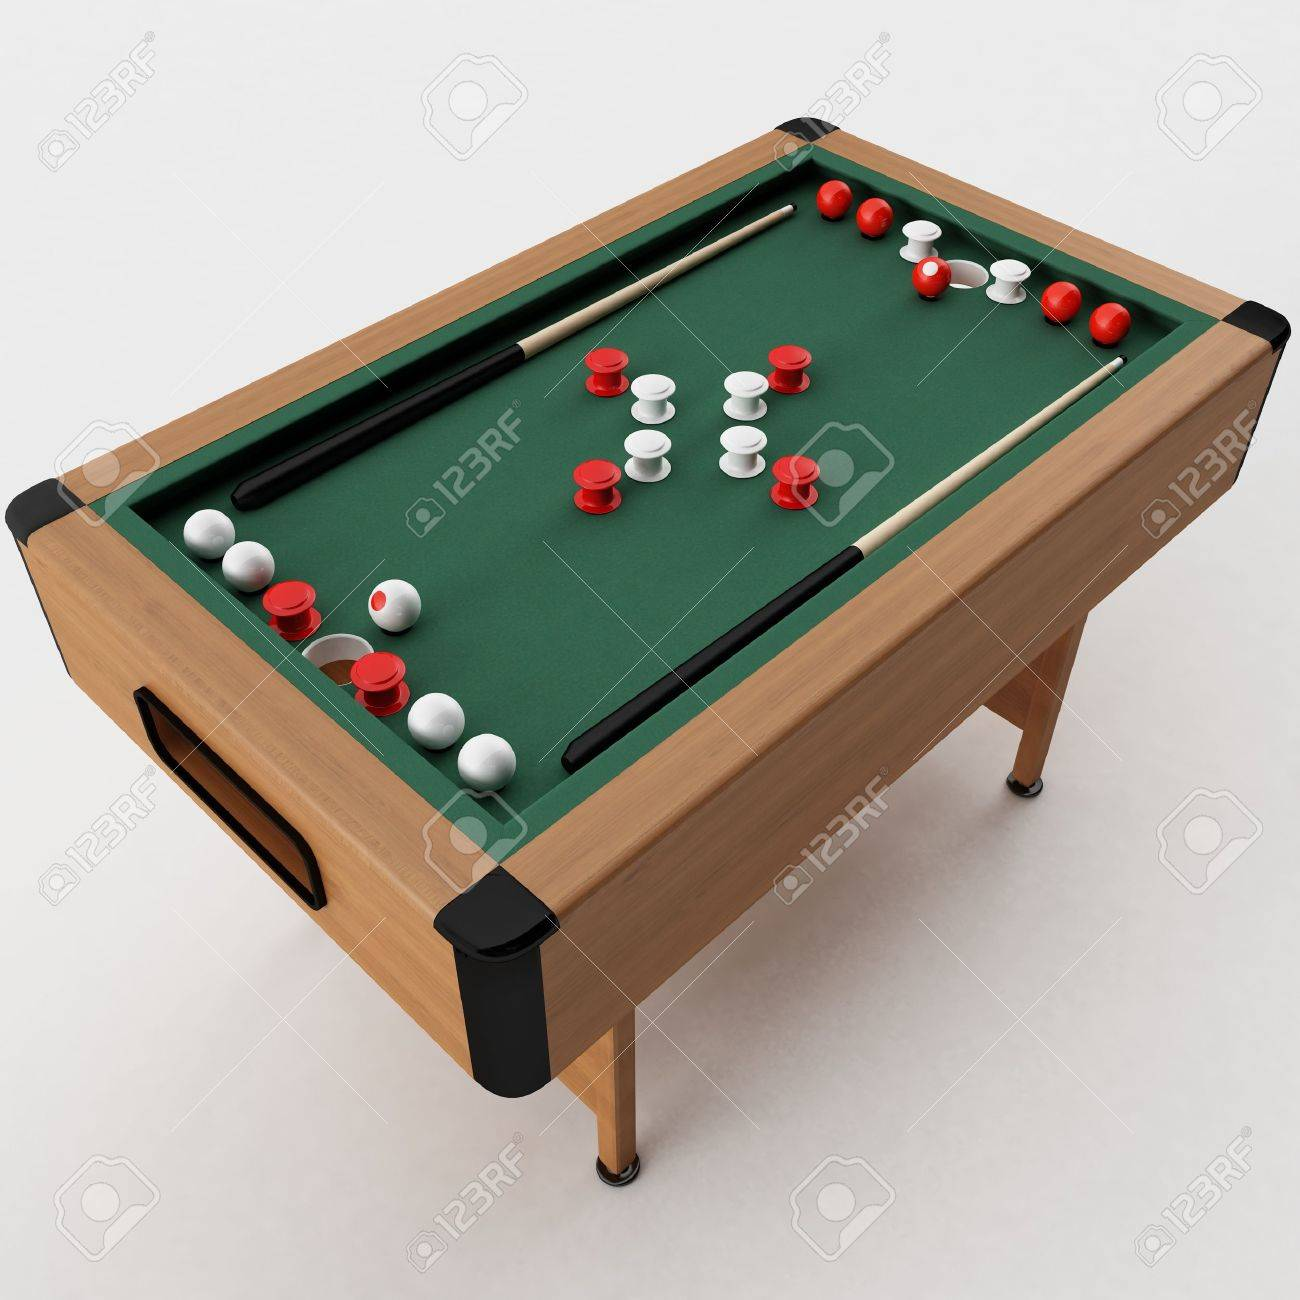 D Rendering Of A Bumper Pool Table Stock Photo Picture And Royalty - English pool table